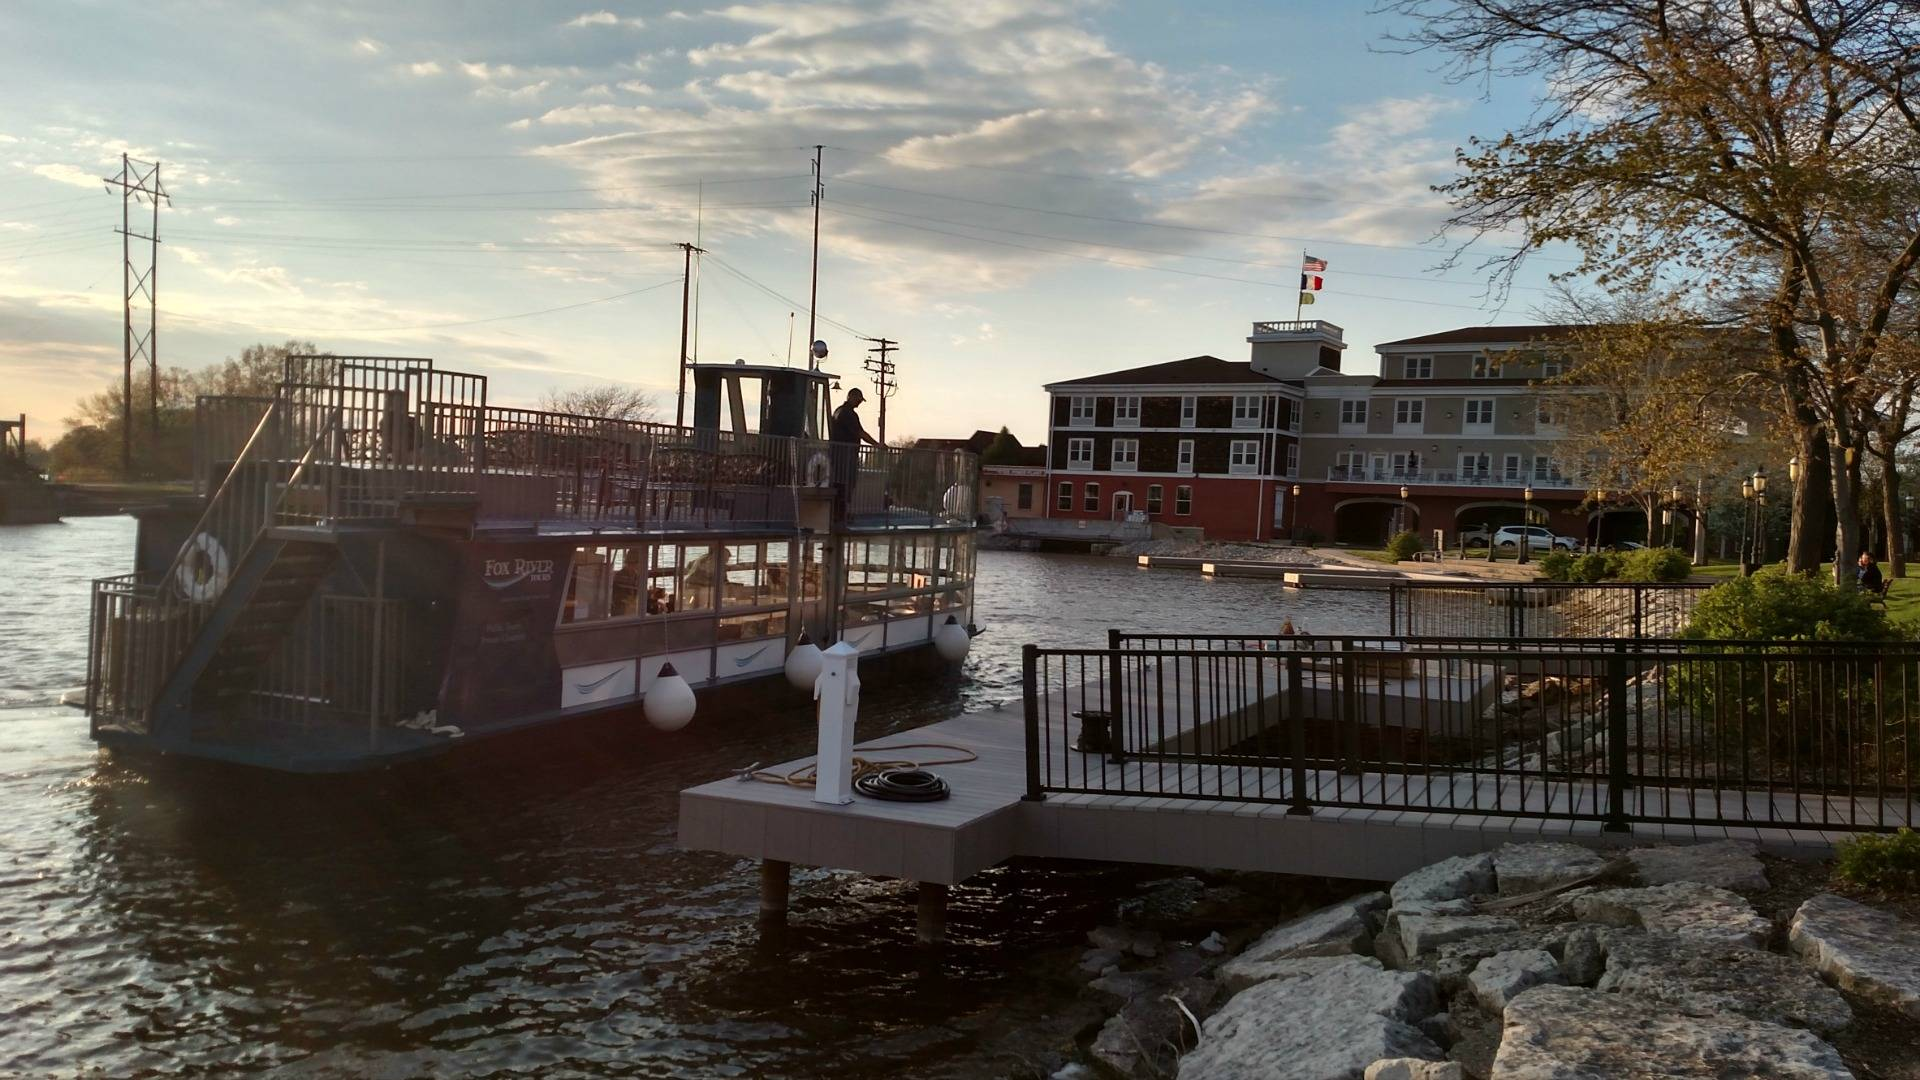 Get out on the beautiful waters of the Fox River aboard River Tyme - docked in De Pere. Book your cruise today!